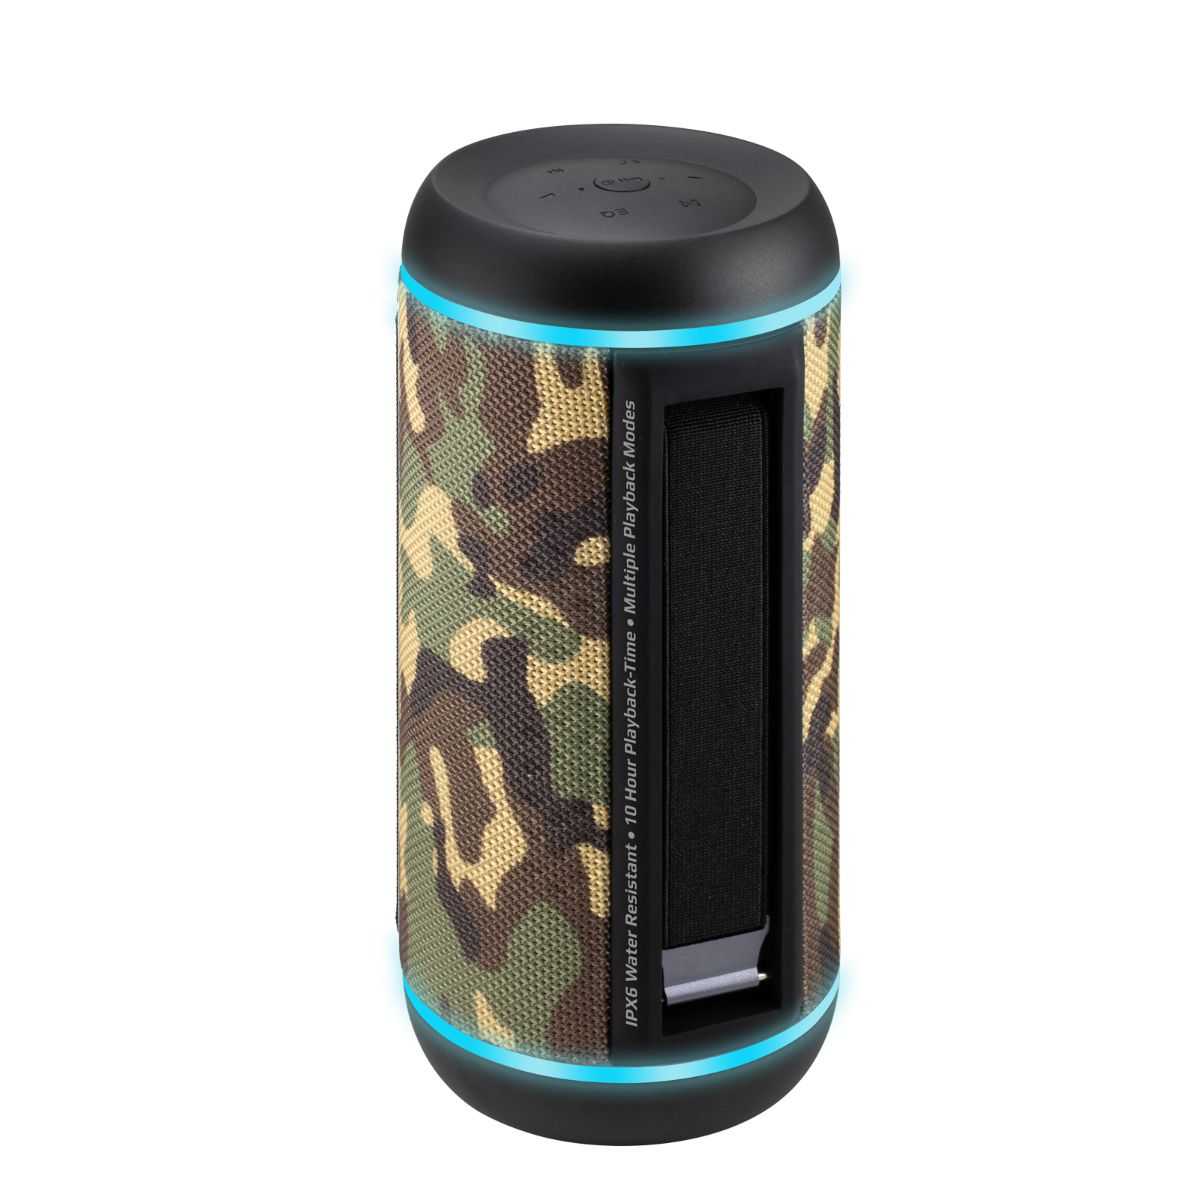 Promate True Wireless Speaker, Water-Resistant IPX6 Portable Indoor/Outdoor 30W Wireless Stereo with Built-In 6600mAh Power bank -Camouflage